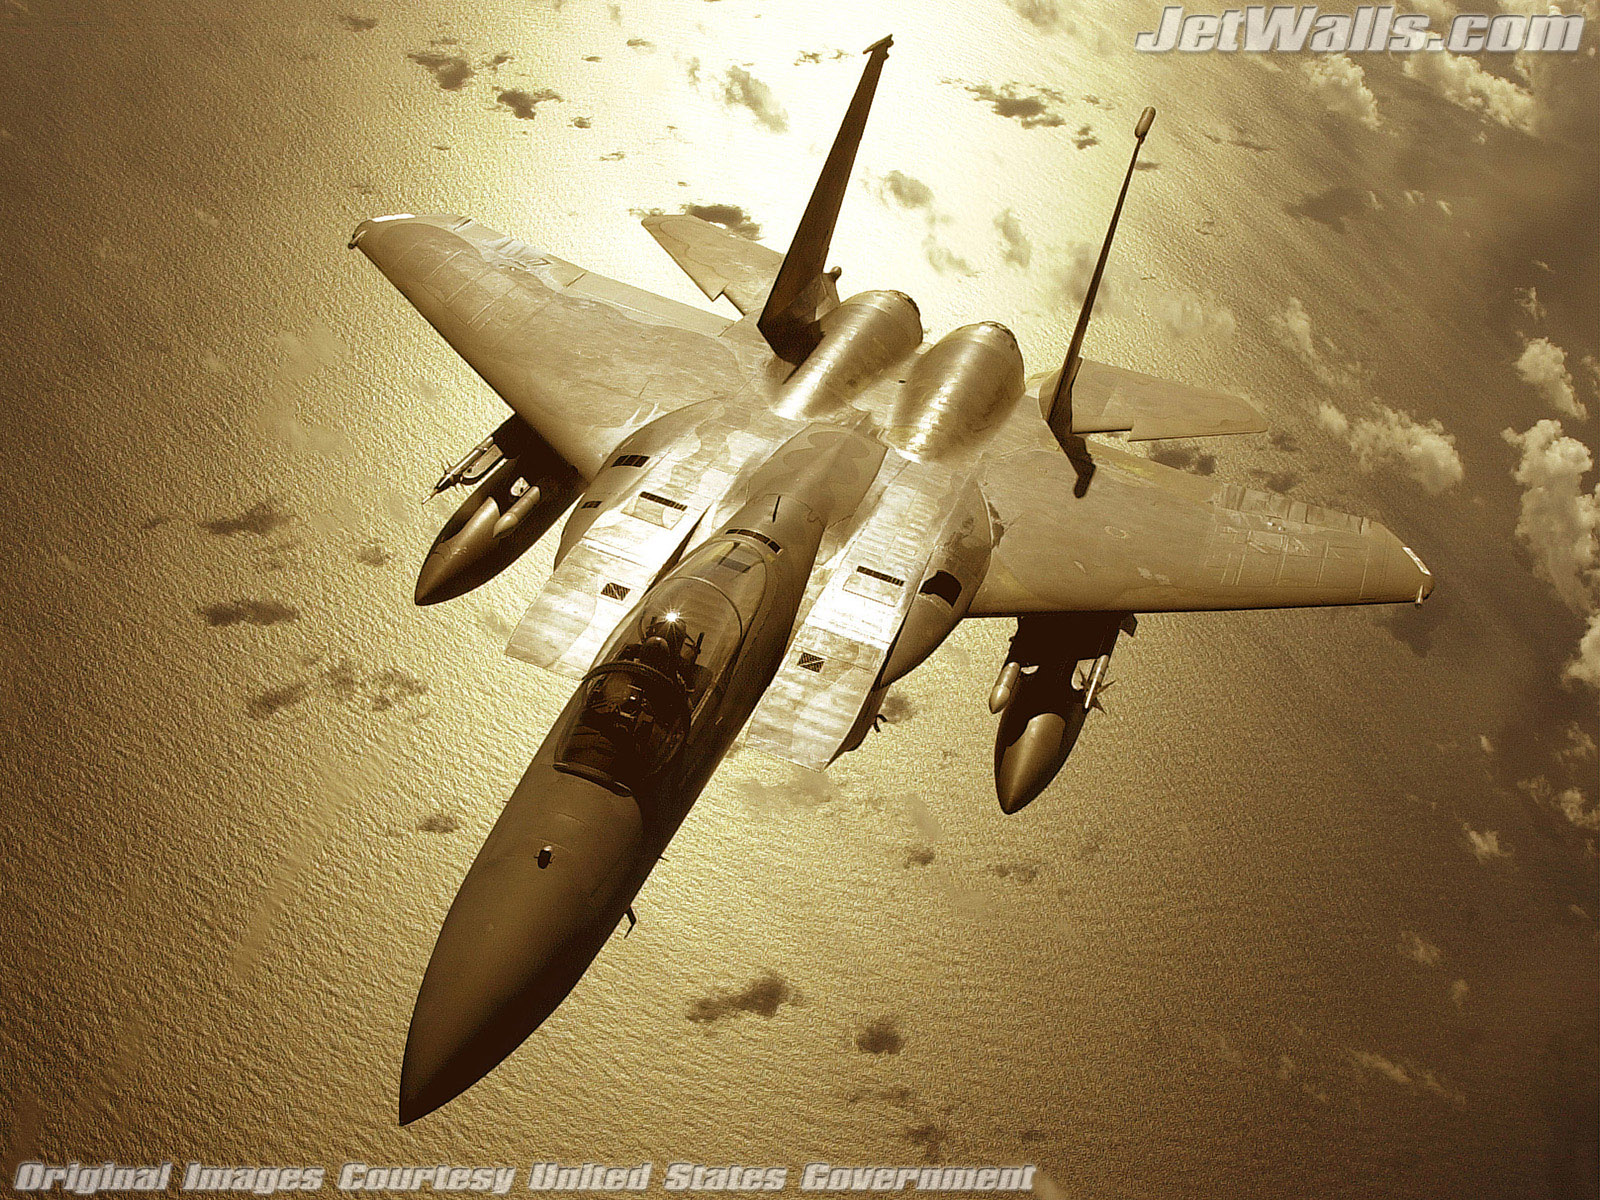 """F-15C"" - Wallpaper No. 10 of 101. Right click for saving options."